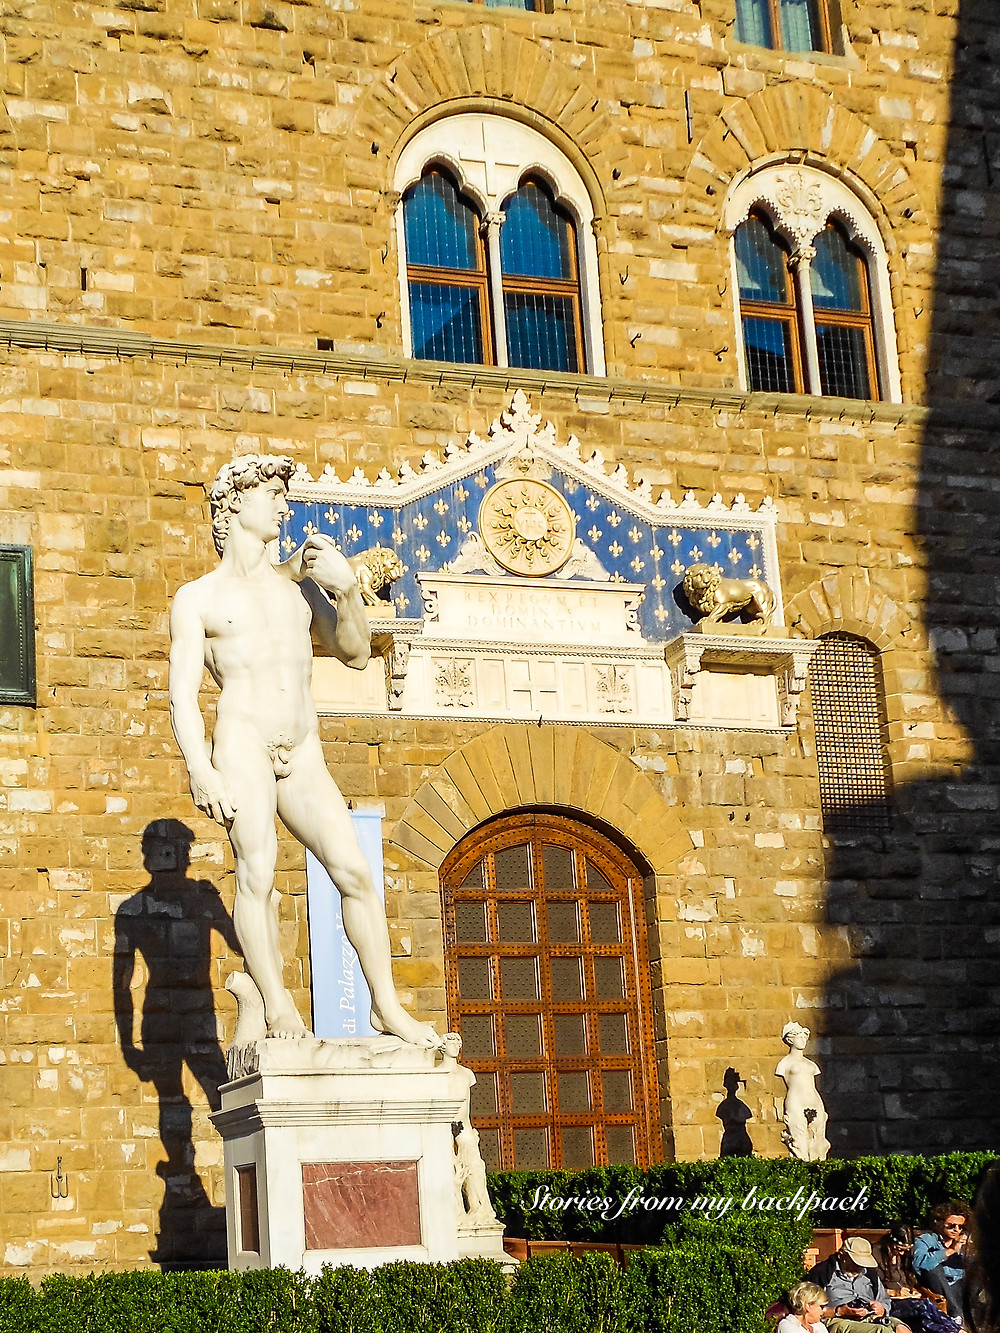 Piazza della Signoria, Michelangelo, David by Michelangelo, Most famous works of Michelangelo, Best things to see in Florence, Where to stay in Florence, Where to eat in Florence, Most famous artworks in Italy